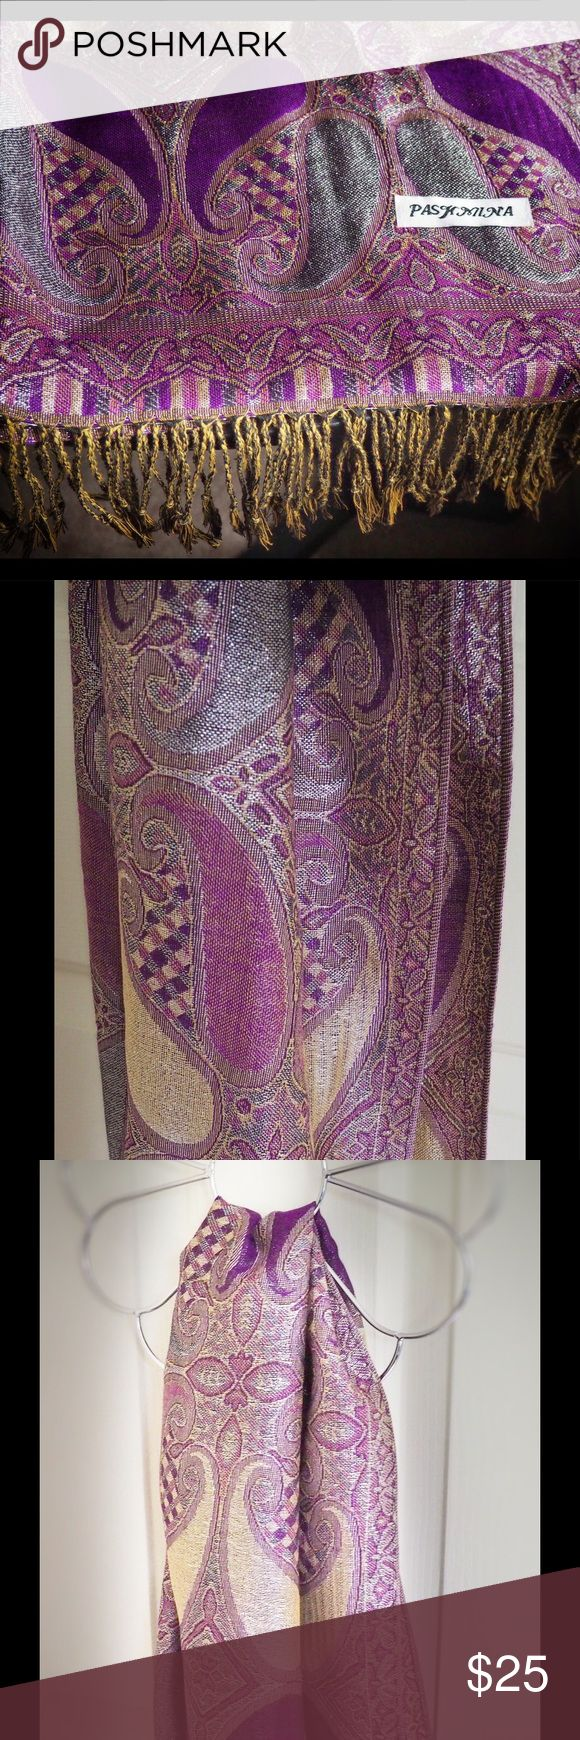 Pashmina purple, silver scarf Scarf, new, I never use it. Accessories Scarves & Wraps